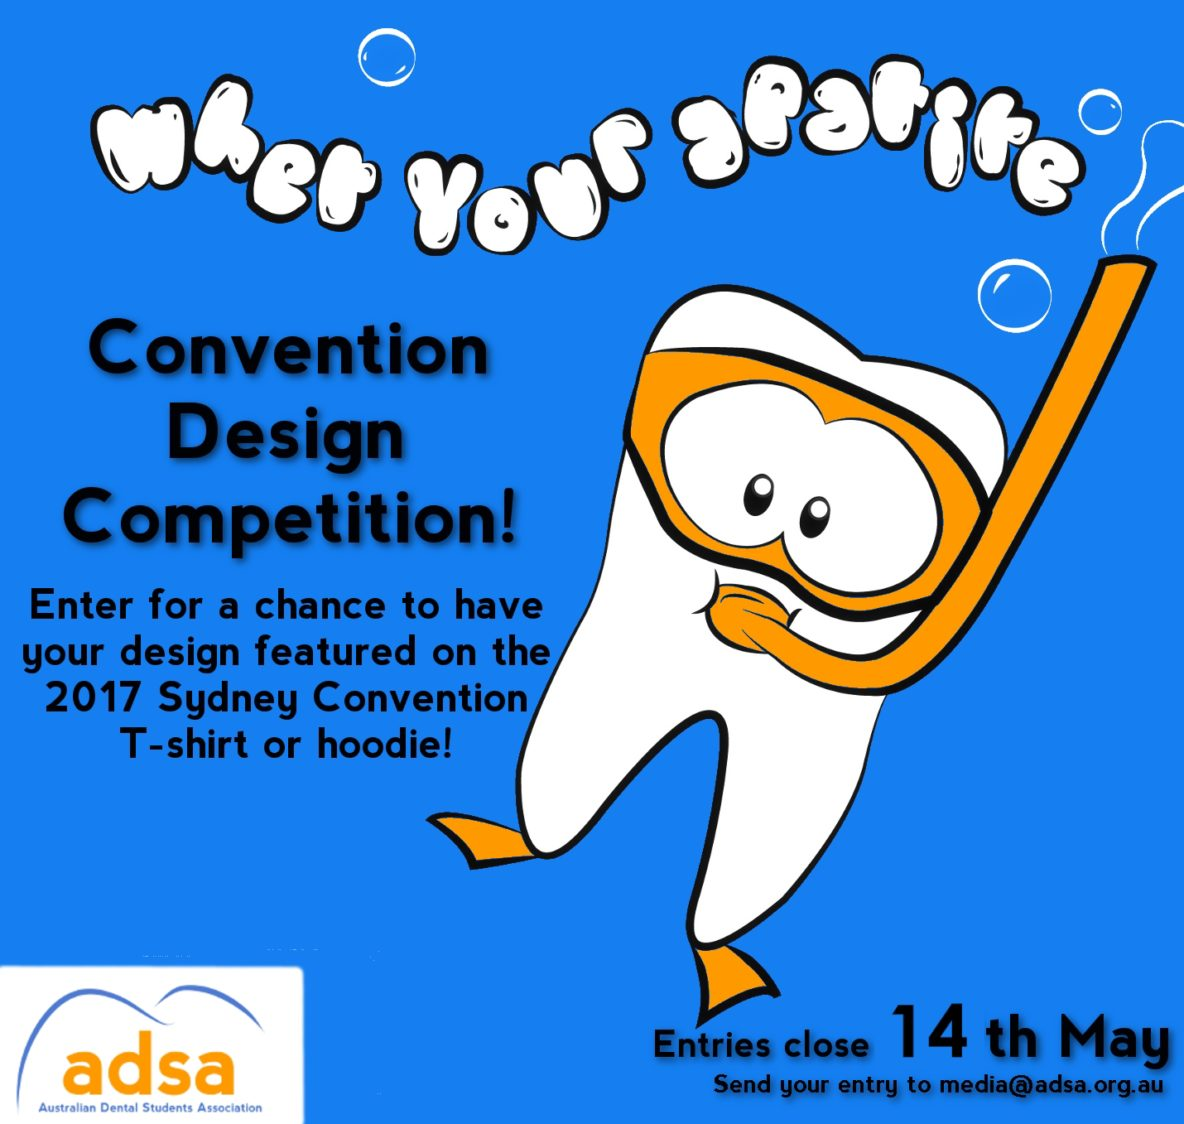 Shirt hoodie design - Convention T Shirt Hoodie Design Competition